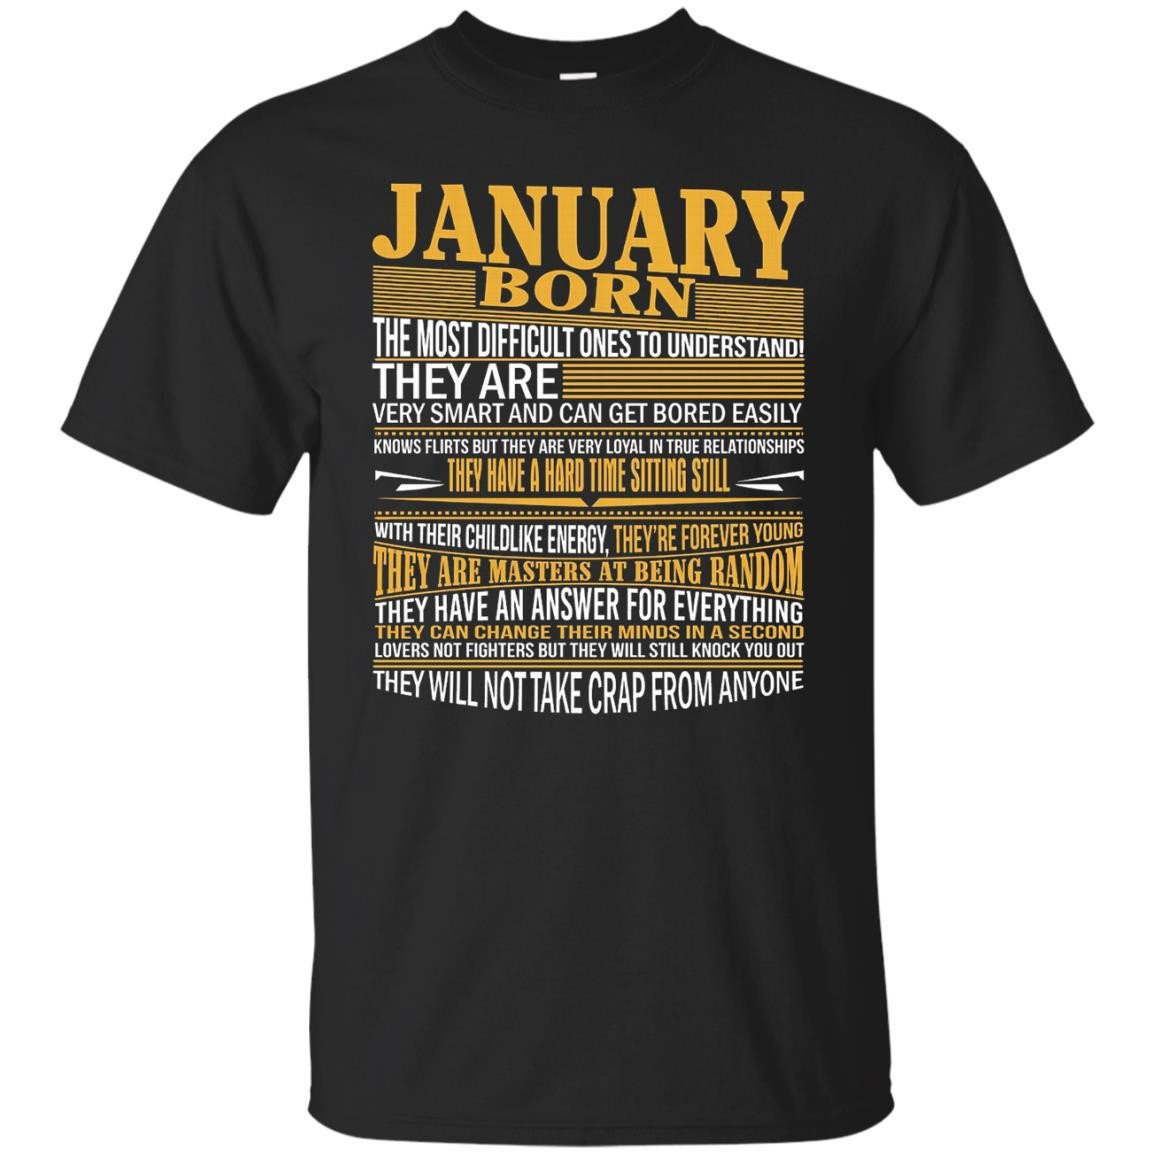 January Born The Most Difficult Ones To Understand T-Shirt